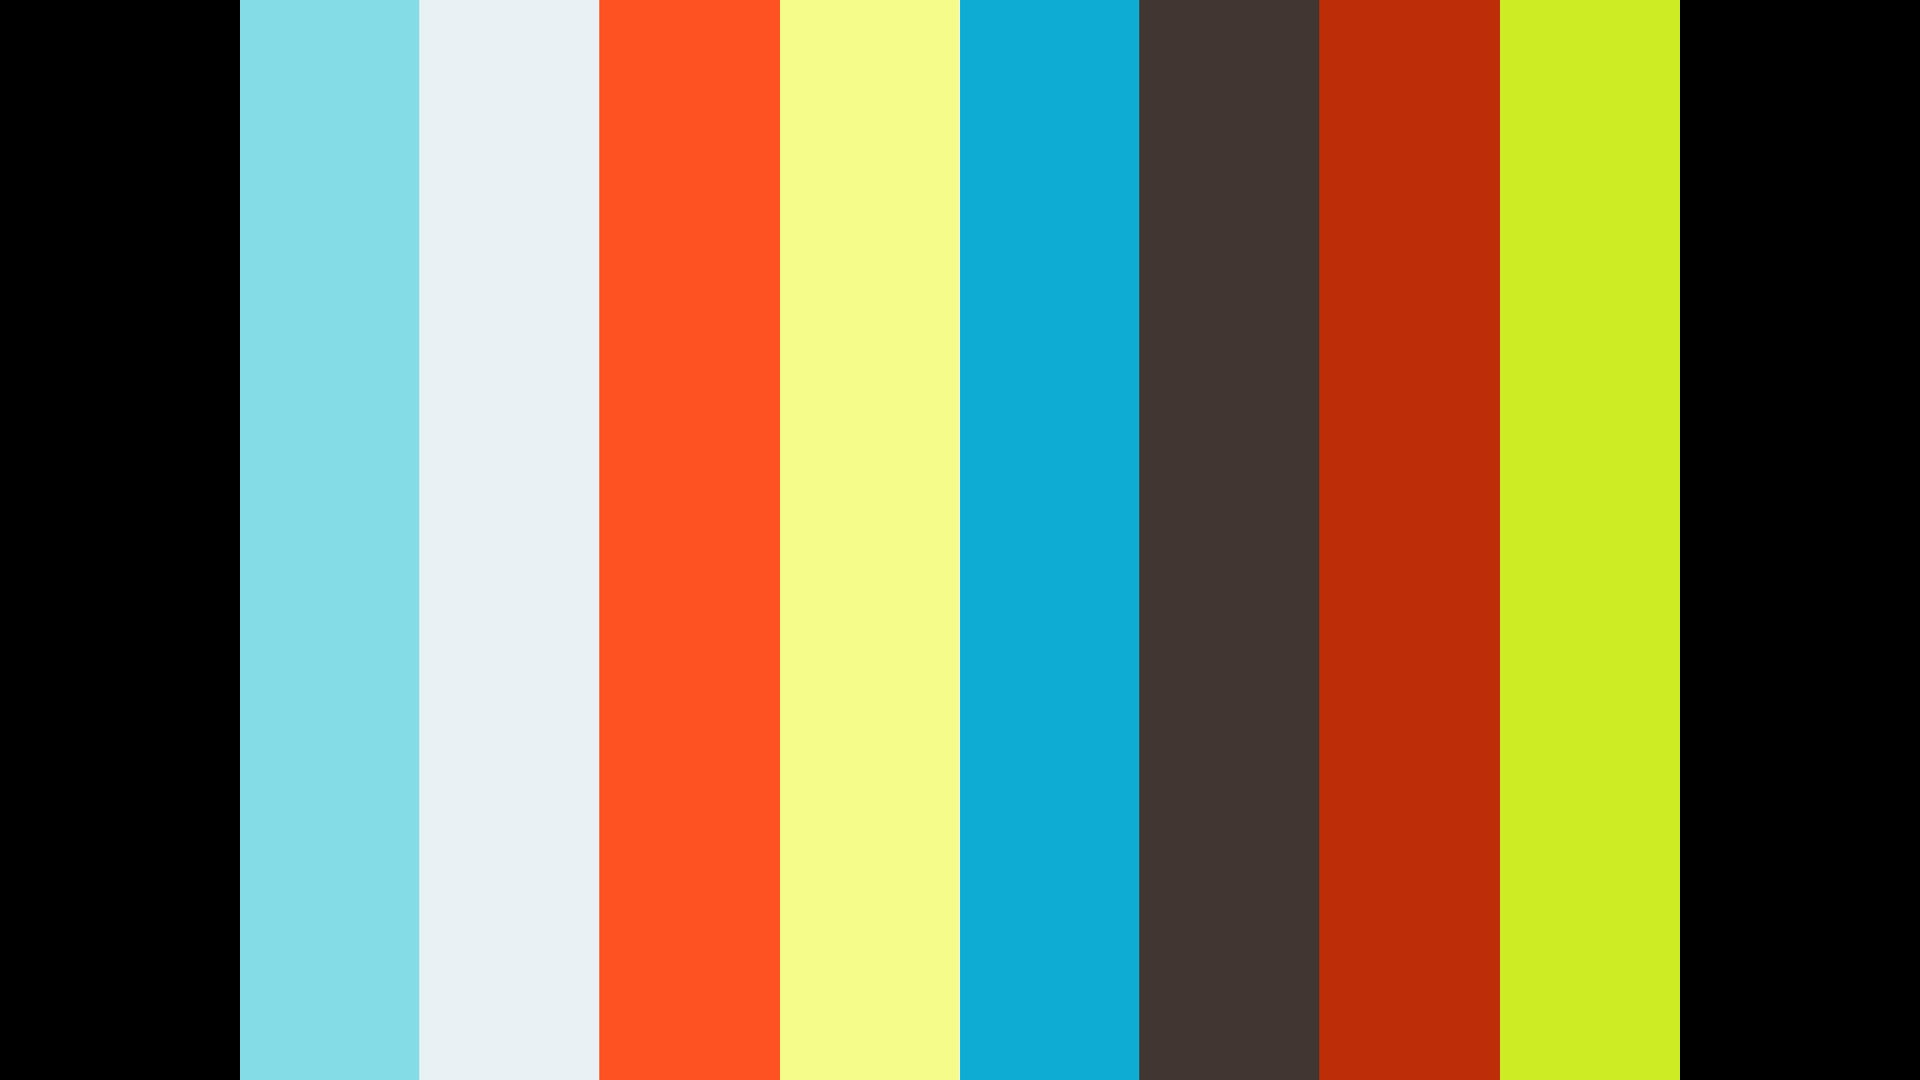 Overflowing Joy